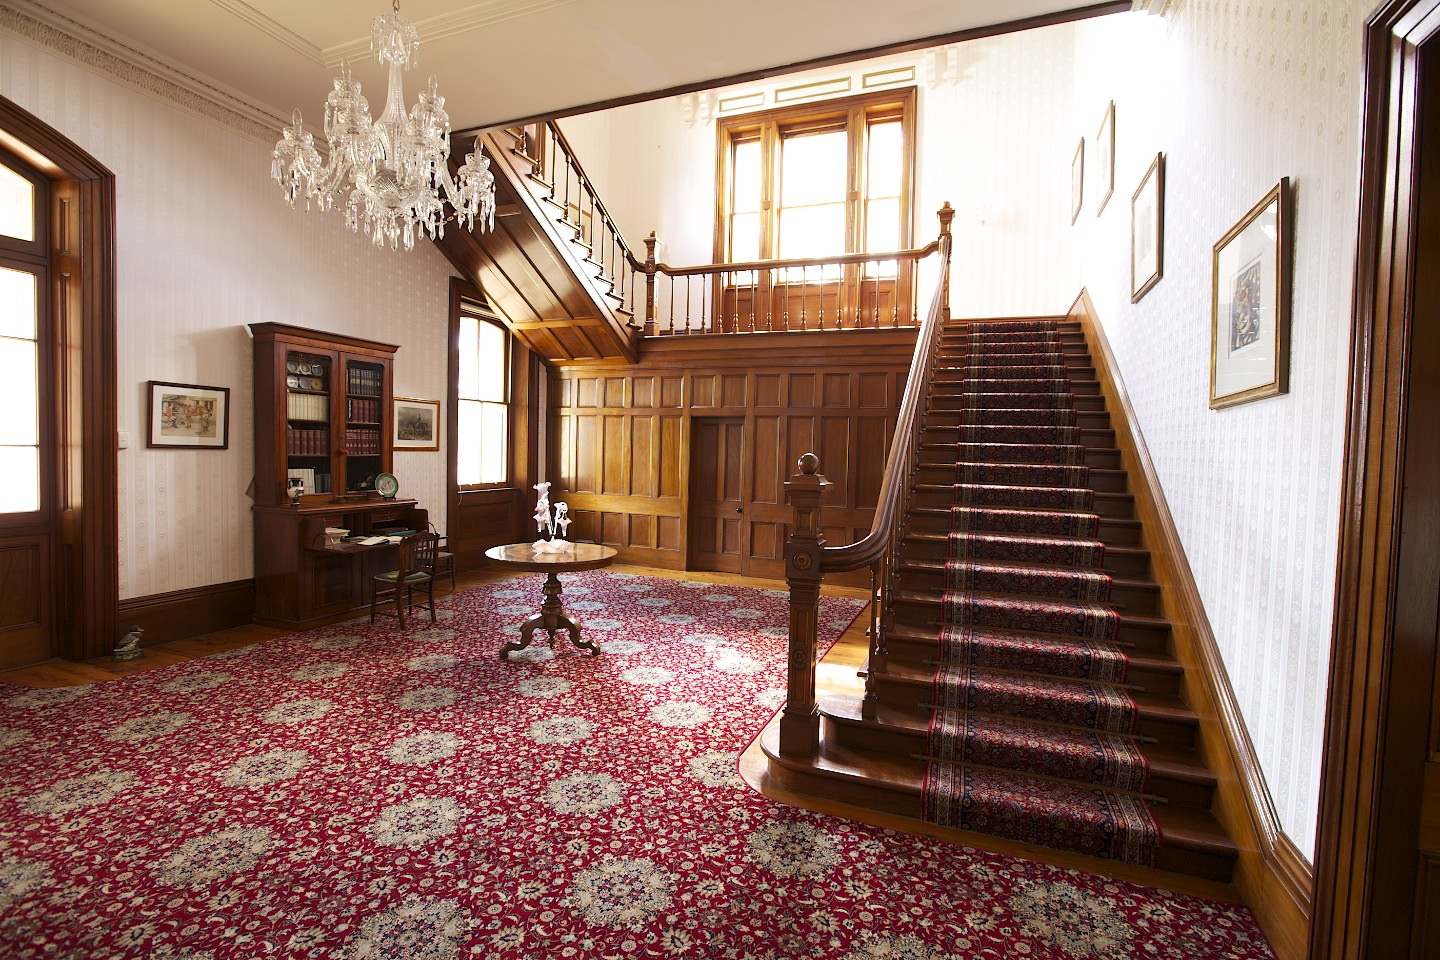 File:Jimbour House   Inside   Staircase